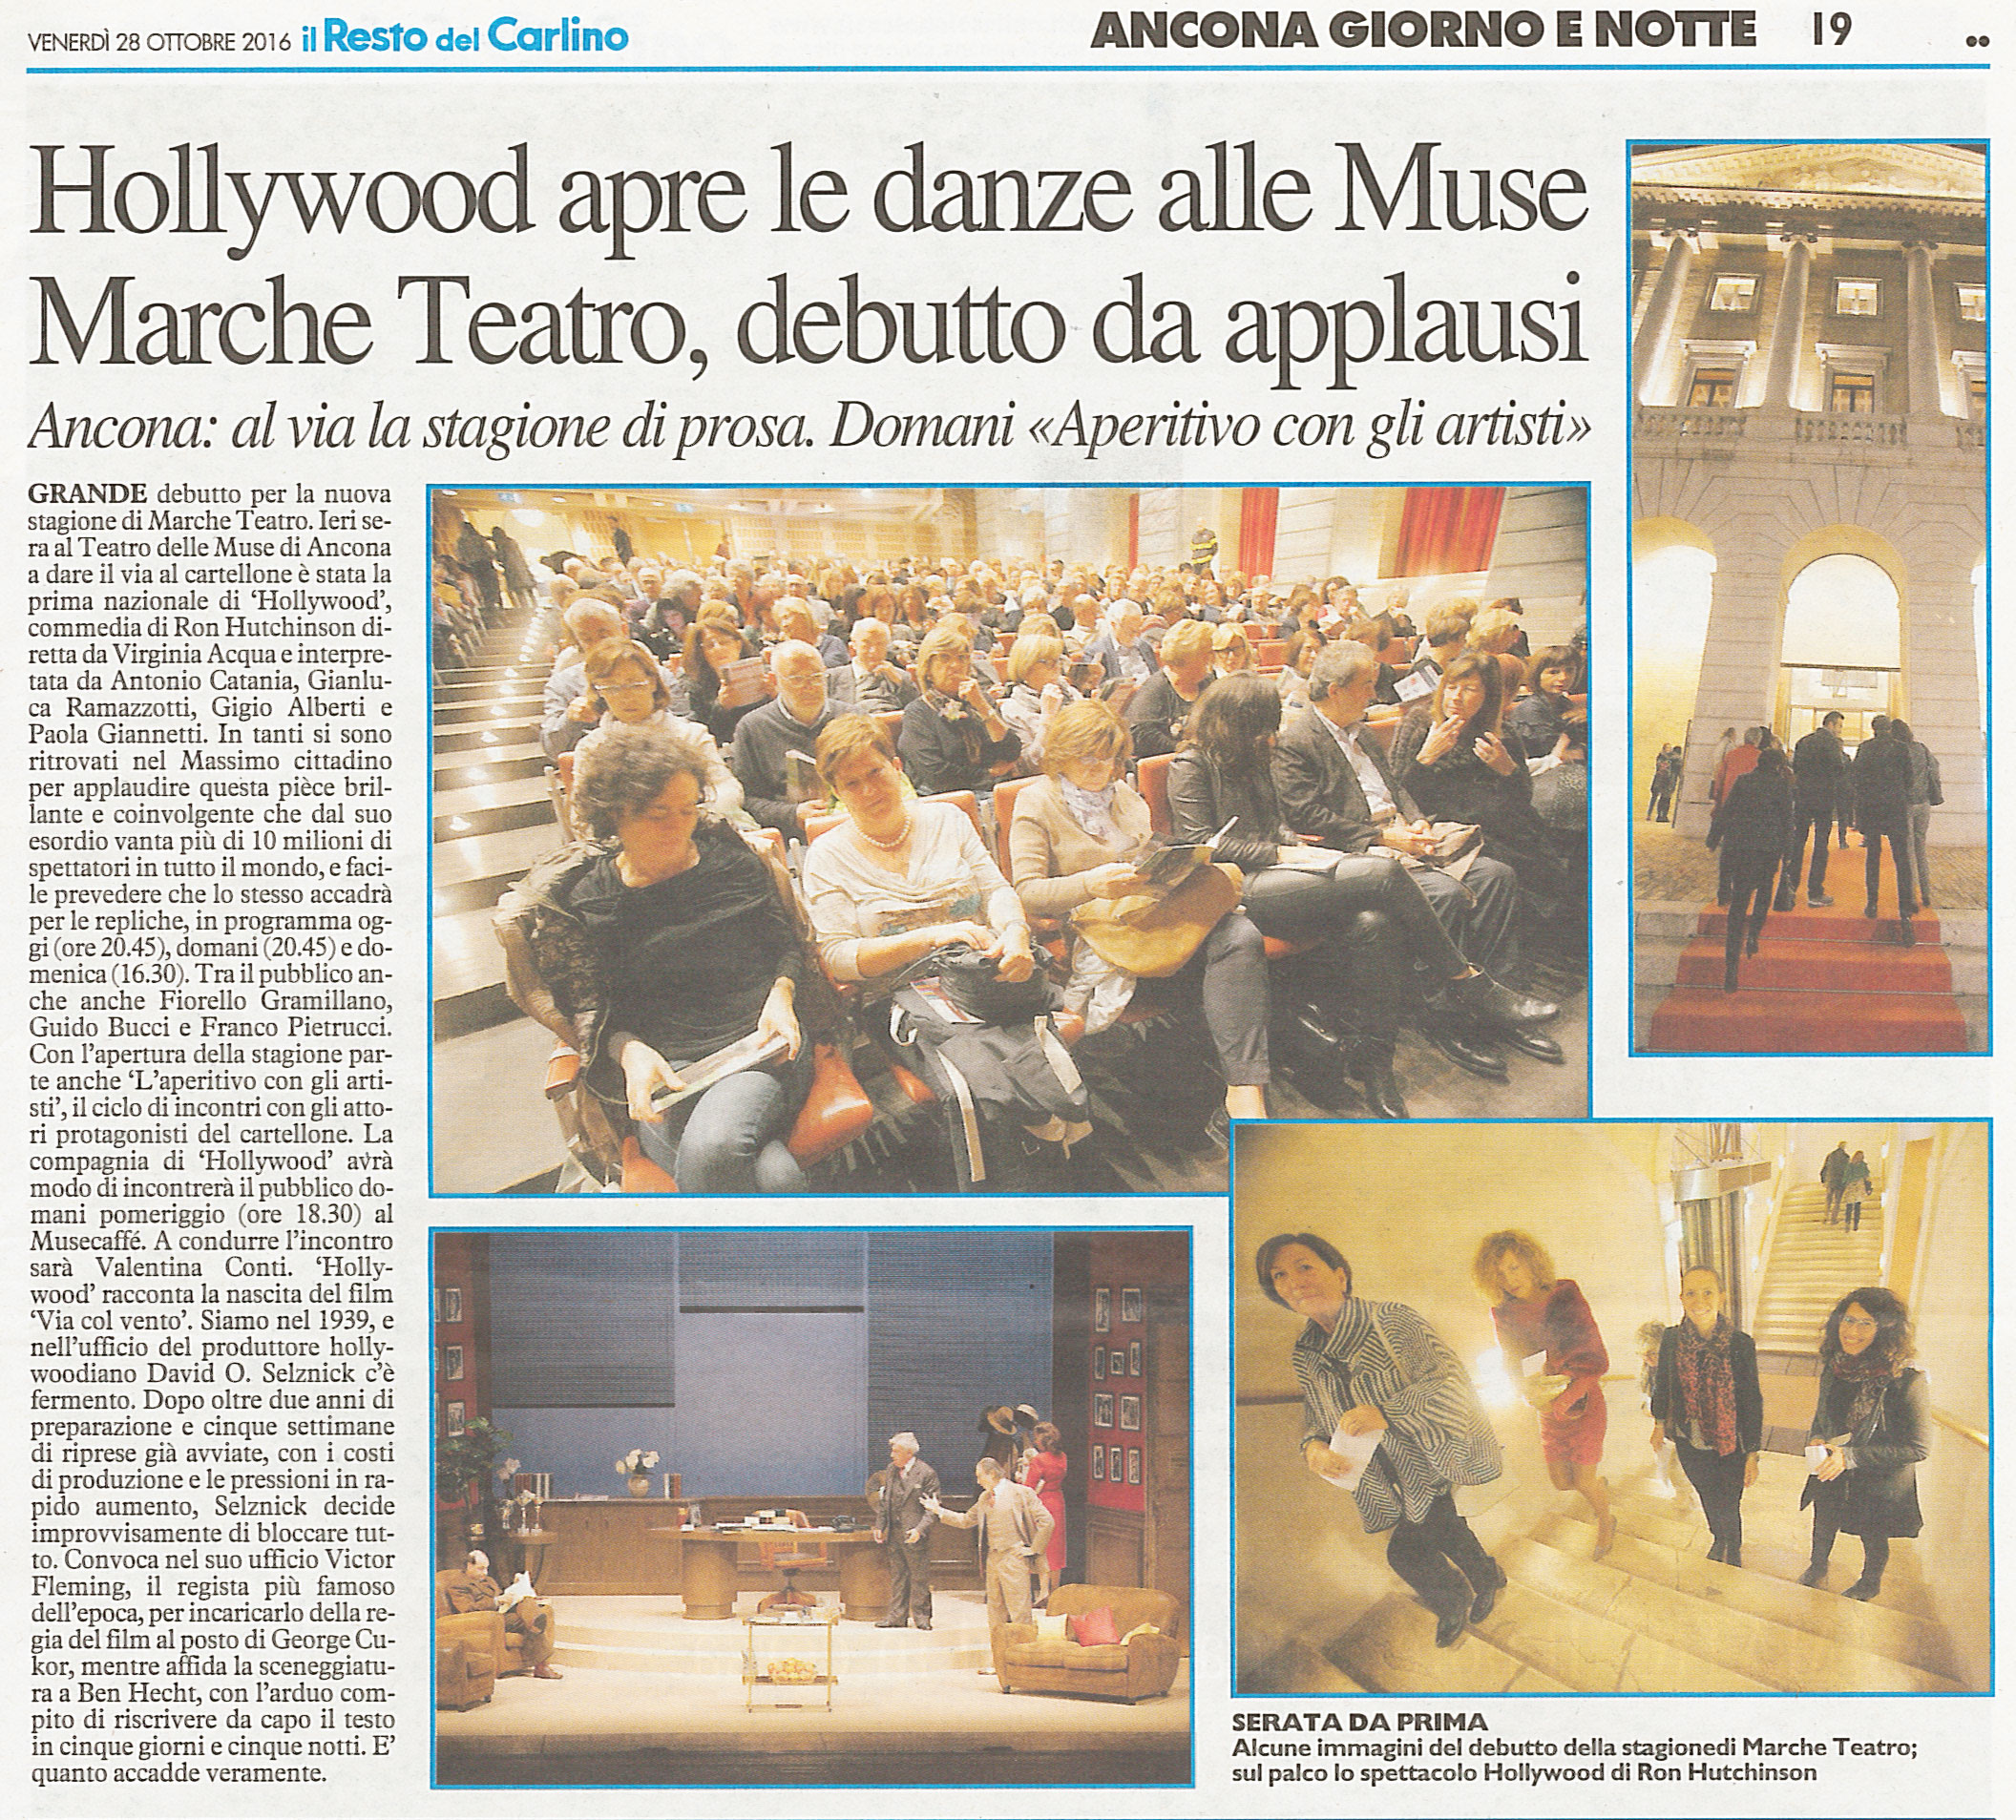 2016_10_28_-hollywood-apre-le-danze-alle-muse-marche-teatro-debutto-di-applausi_il-resto-del-carlino